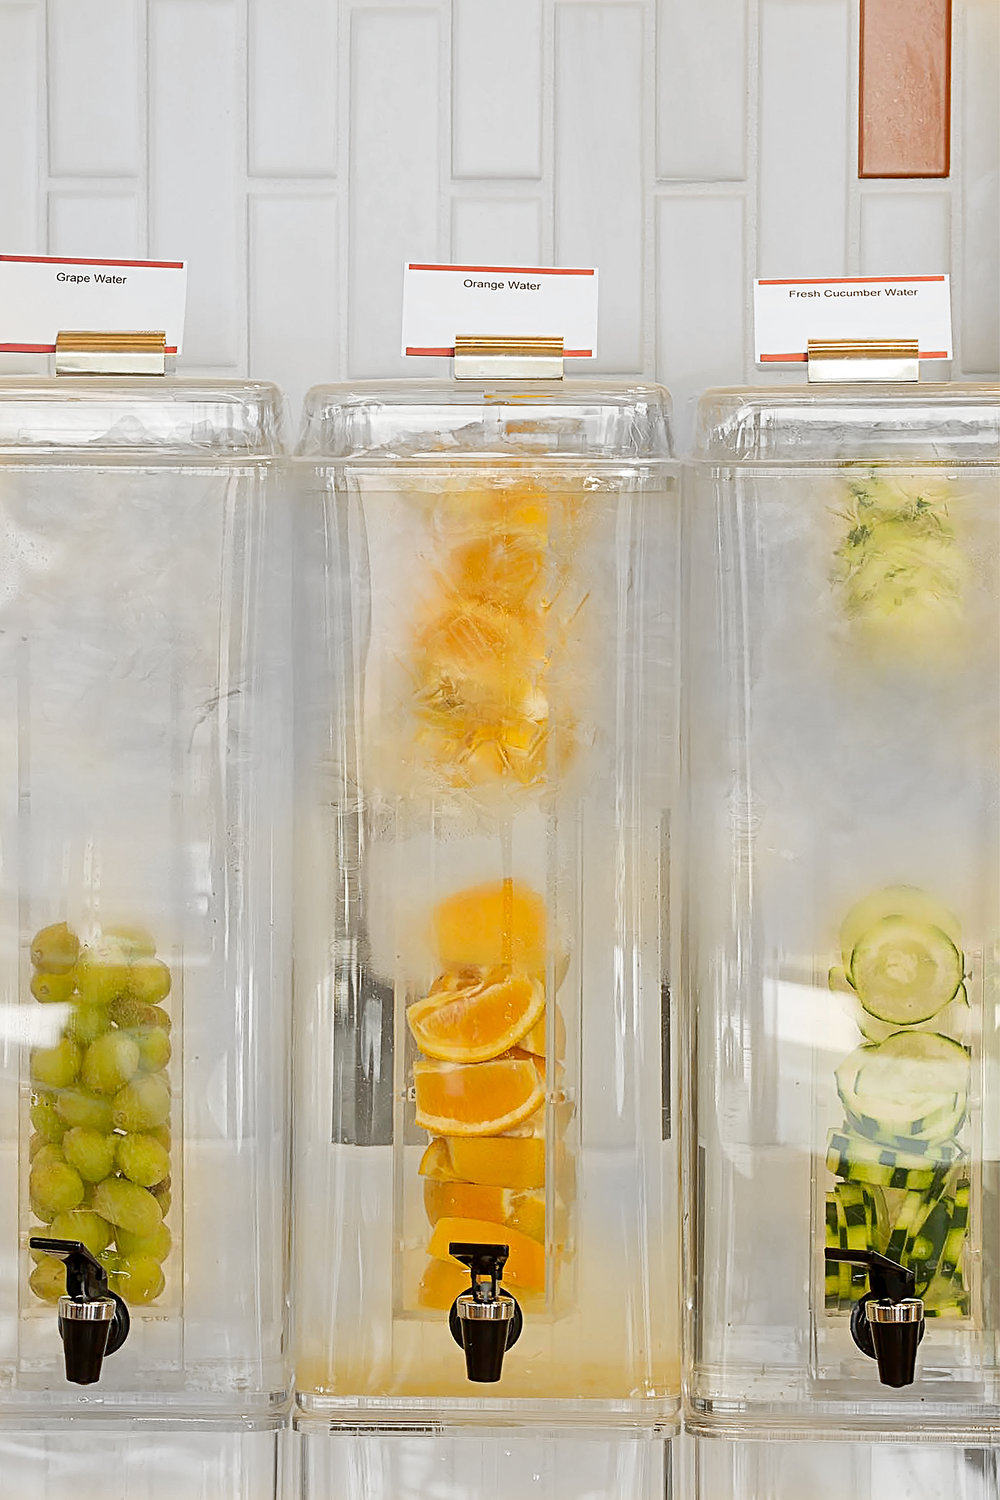 GRAPE, ORANGE AND CUCUMBER, INFUSED WATER. ELITE PRIVATE SCHOOL CAFETERIA